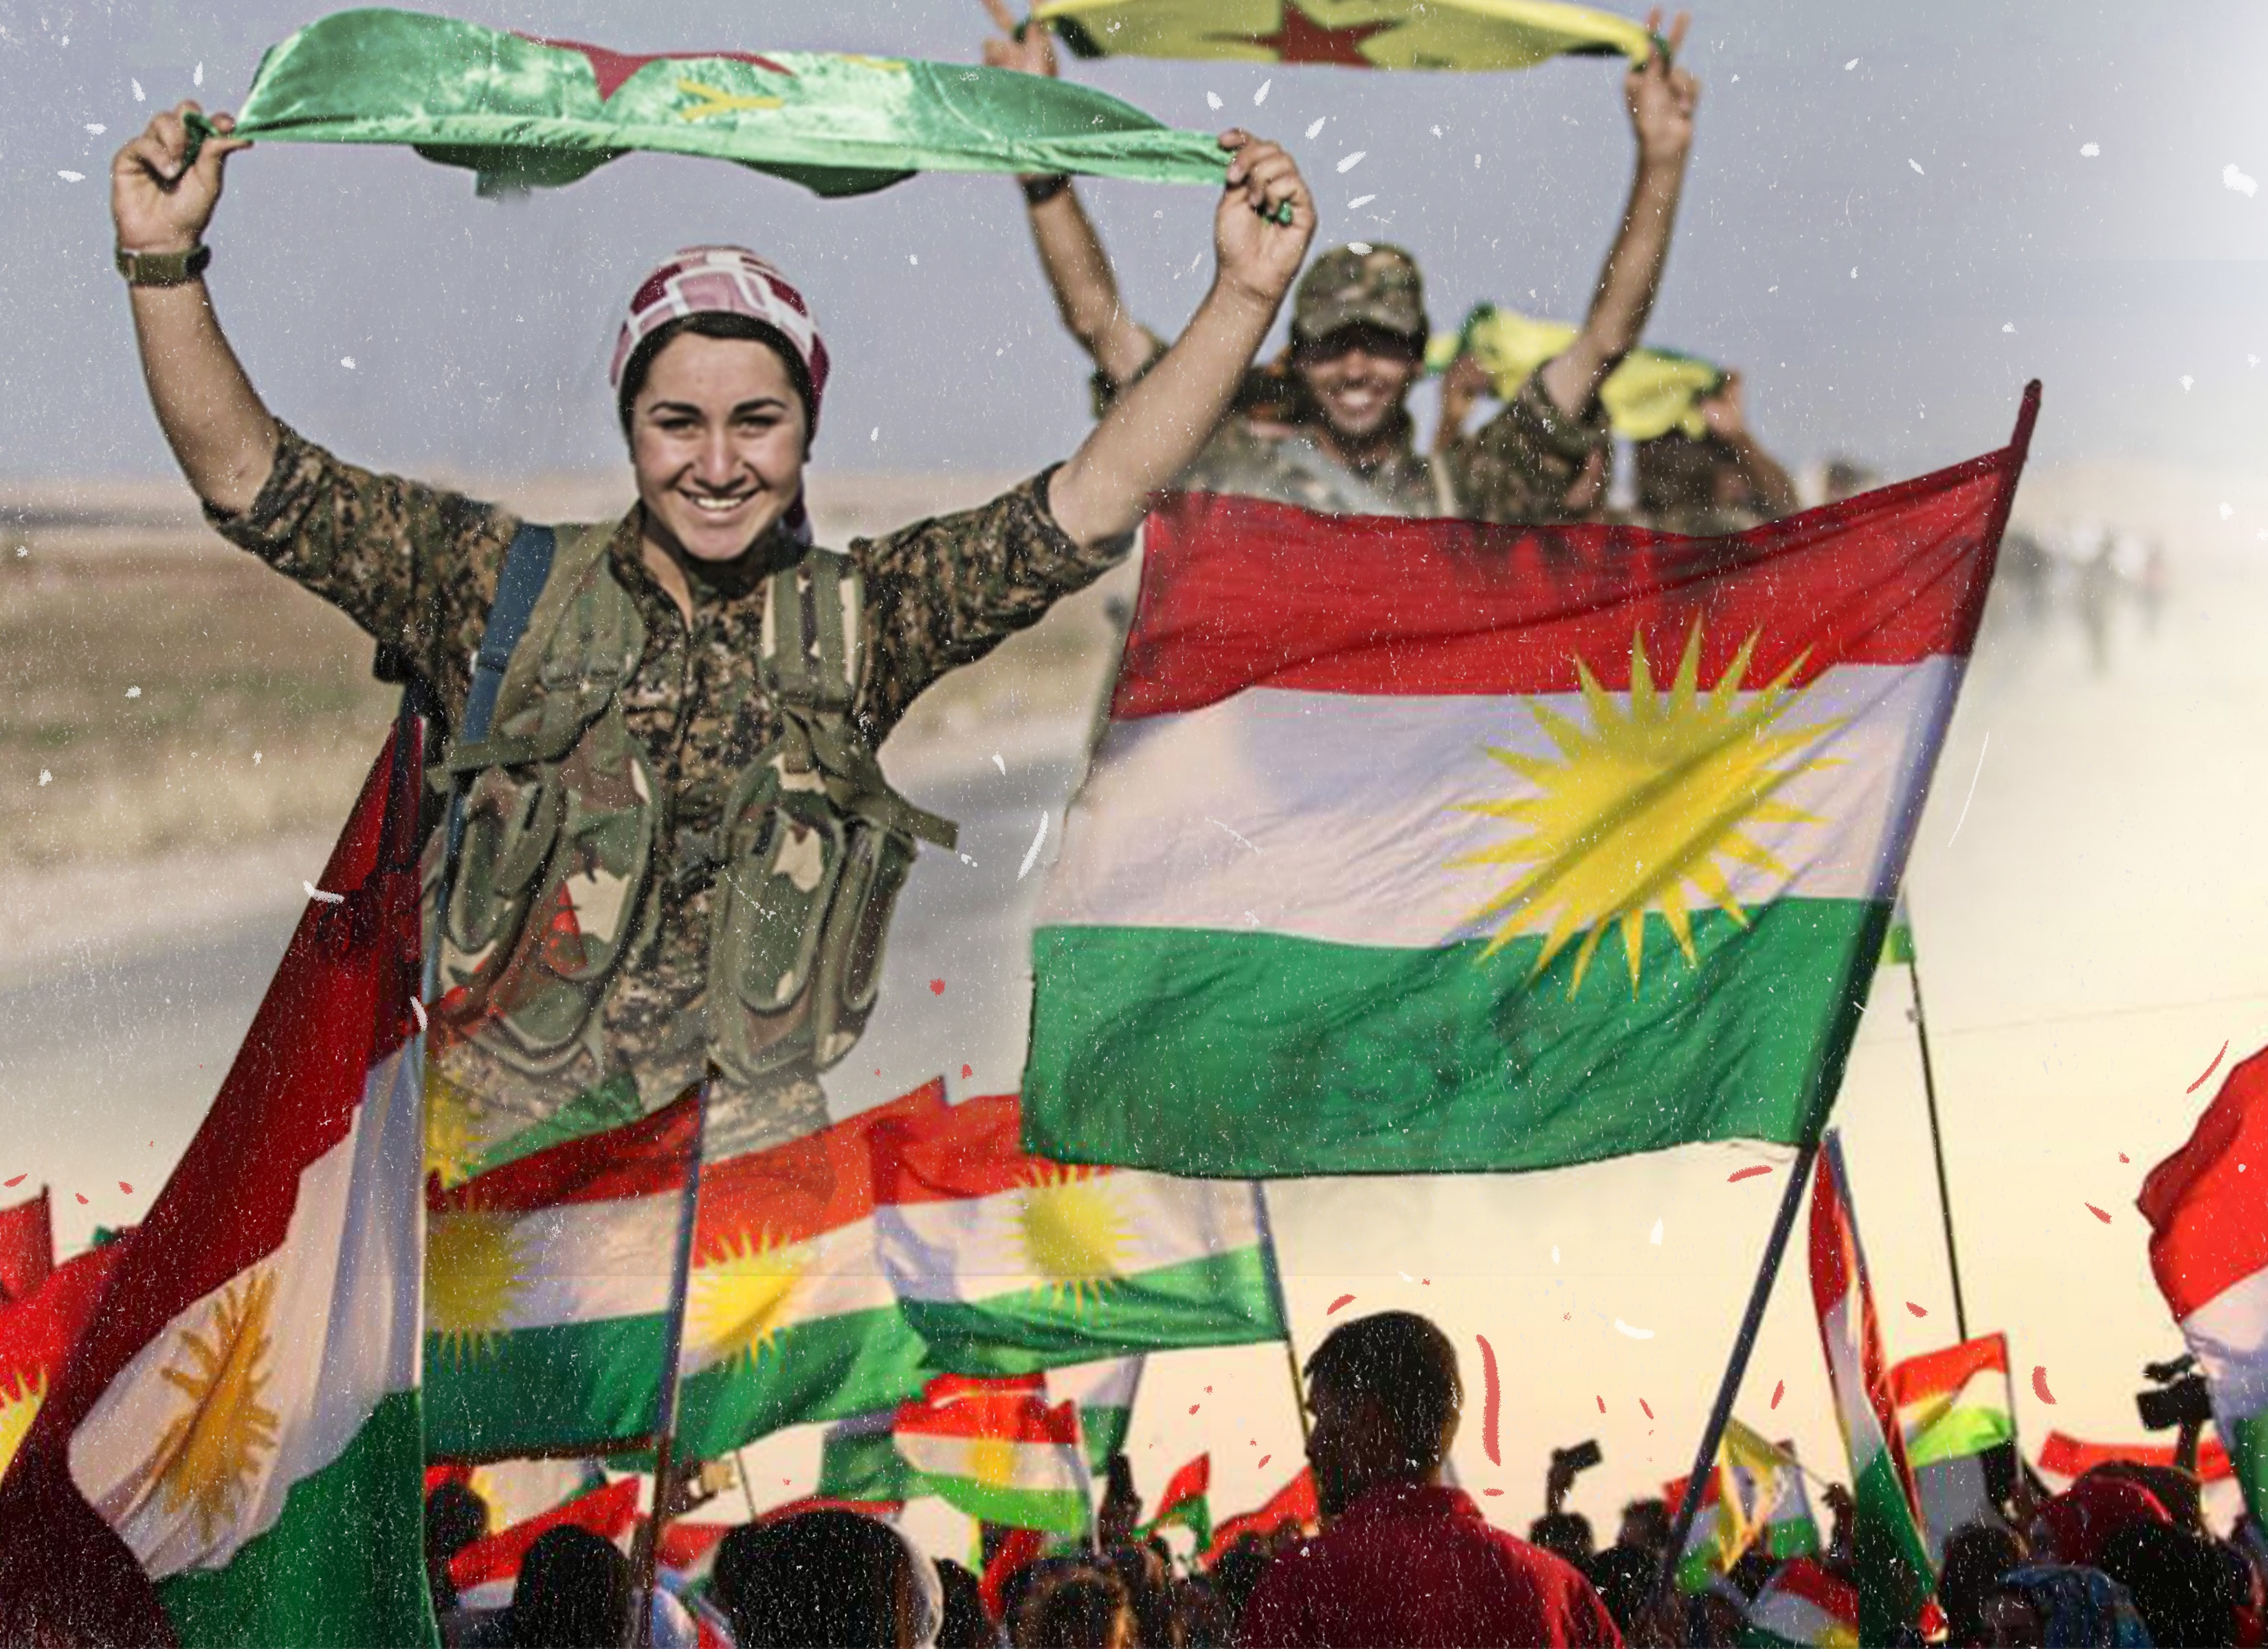 KURDISH STRUGGLE FOR DEMOCRACY AND GENDER EQUALITY IN SYRIA